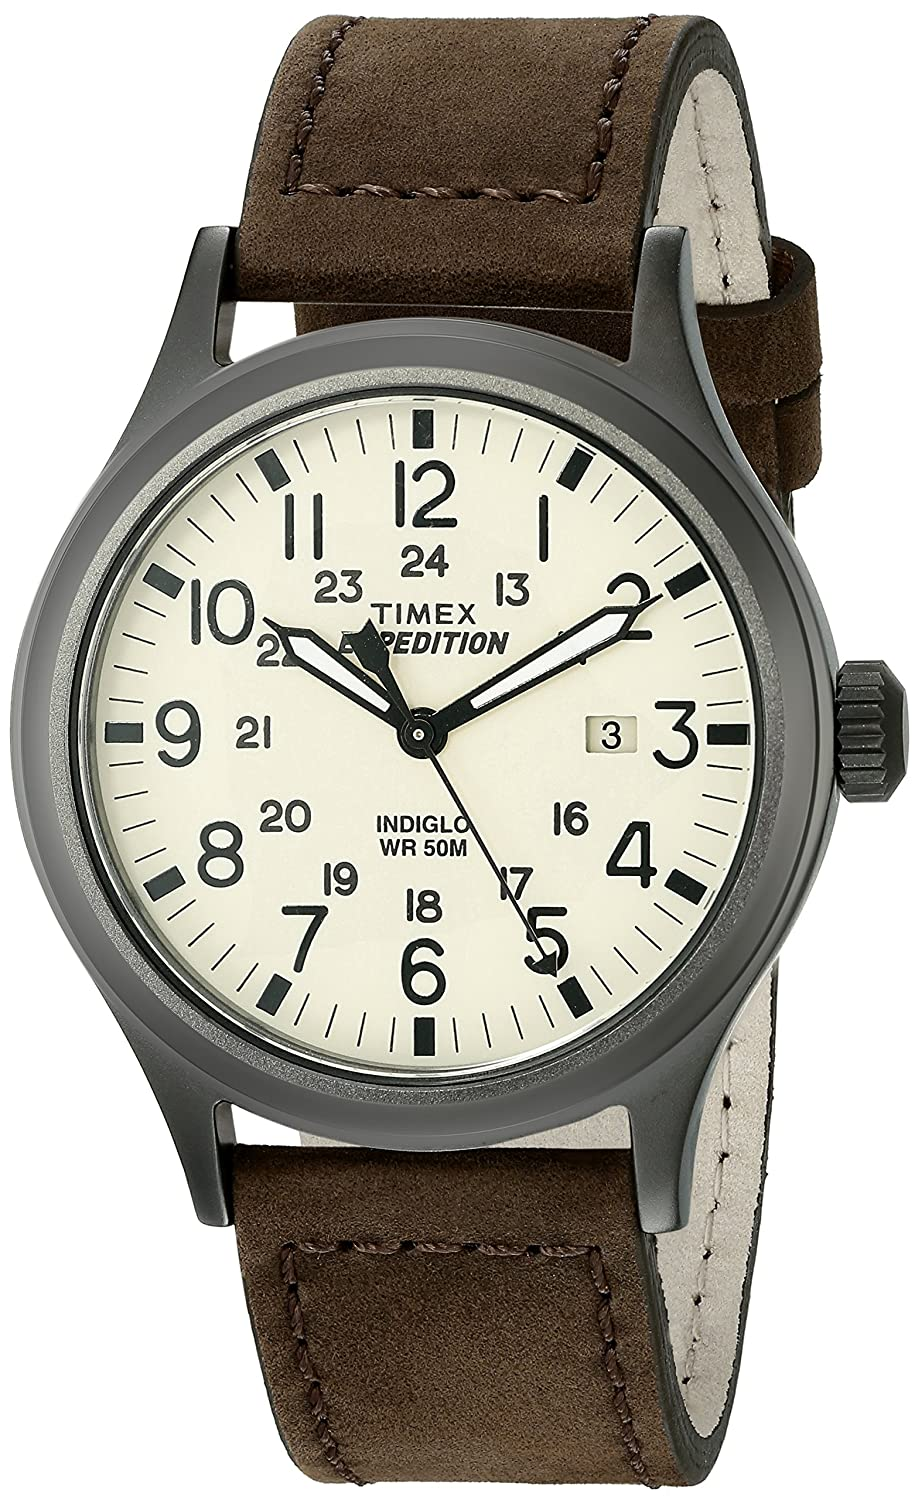 timex men s quartz watch brown dial analogue display and timex men s quartz watch brown dial analogue display and black leather strap tw4b01900 amazon co uk watches